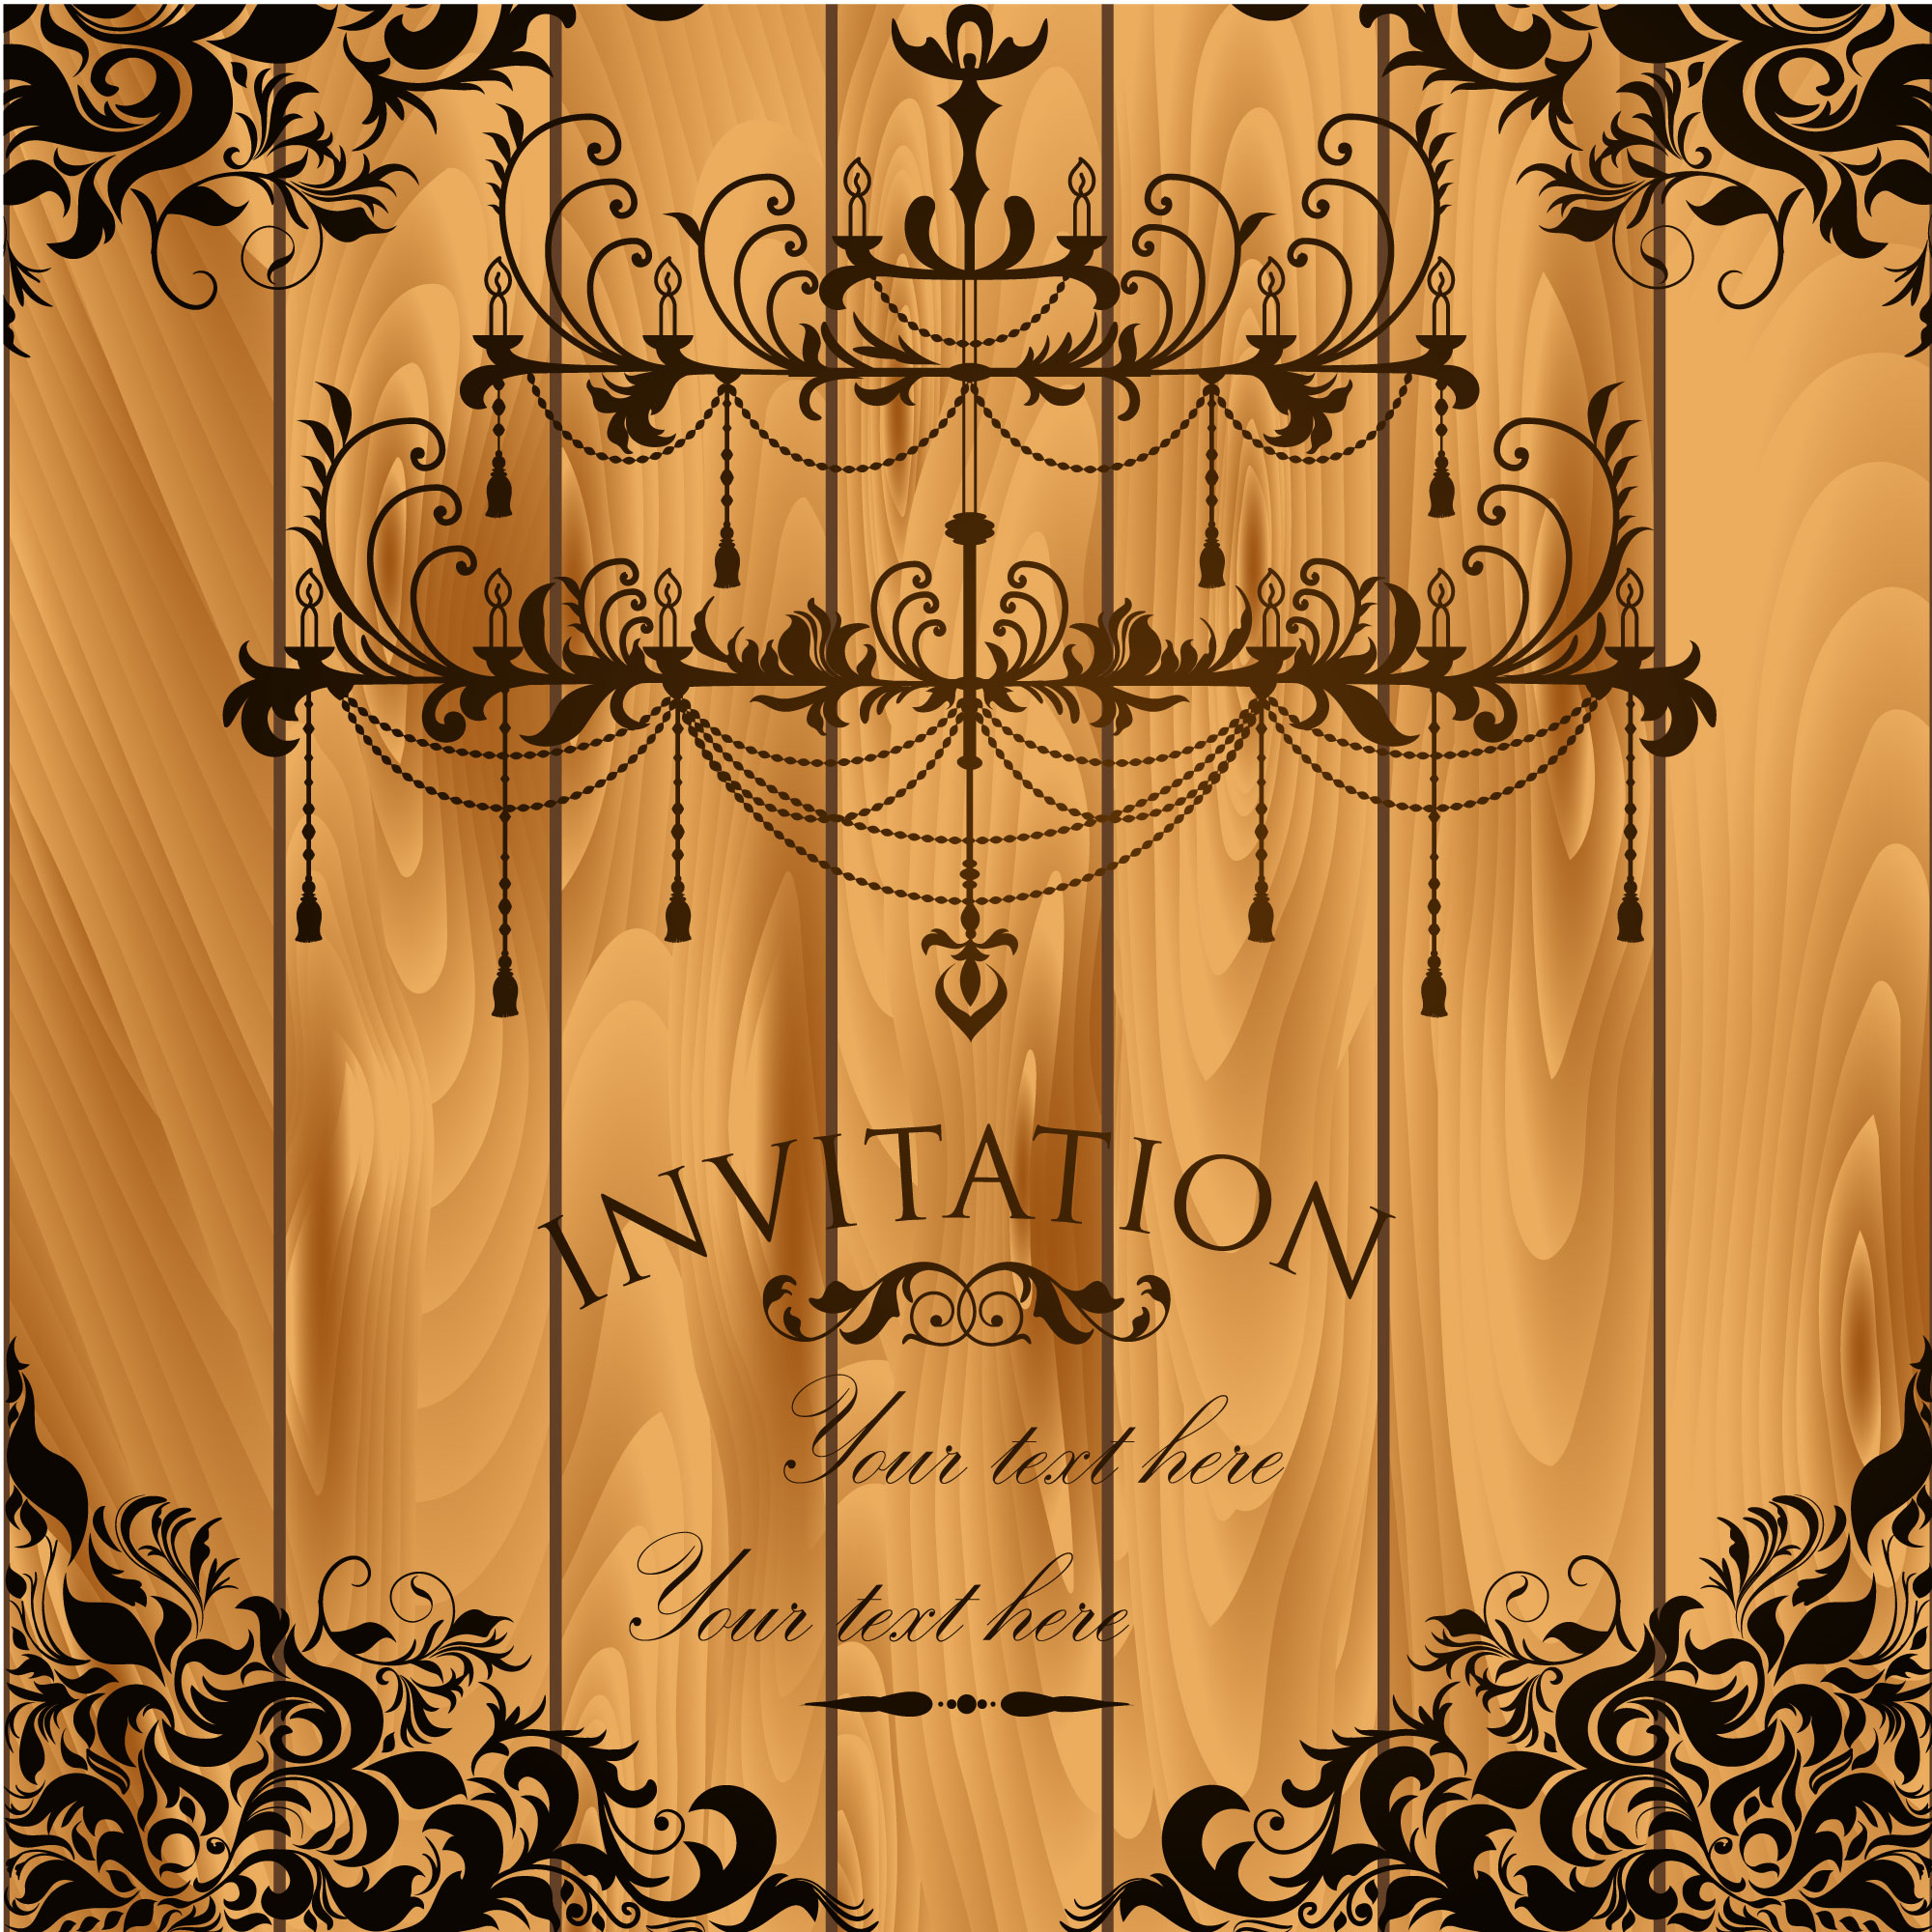 Vintage invitation with wooden background